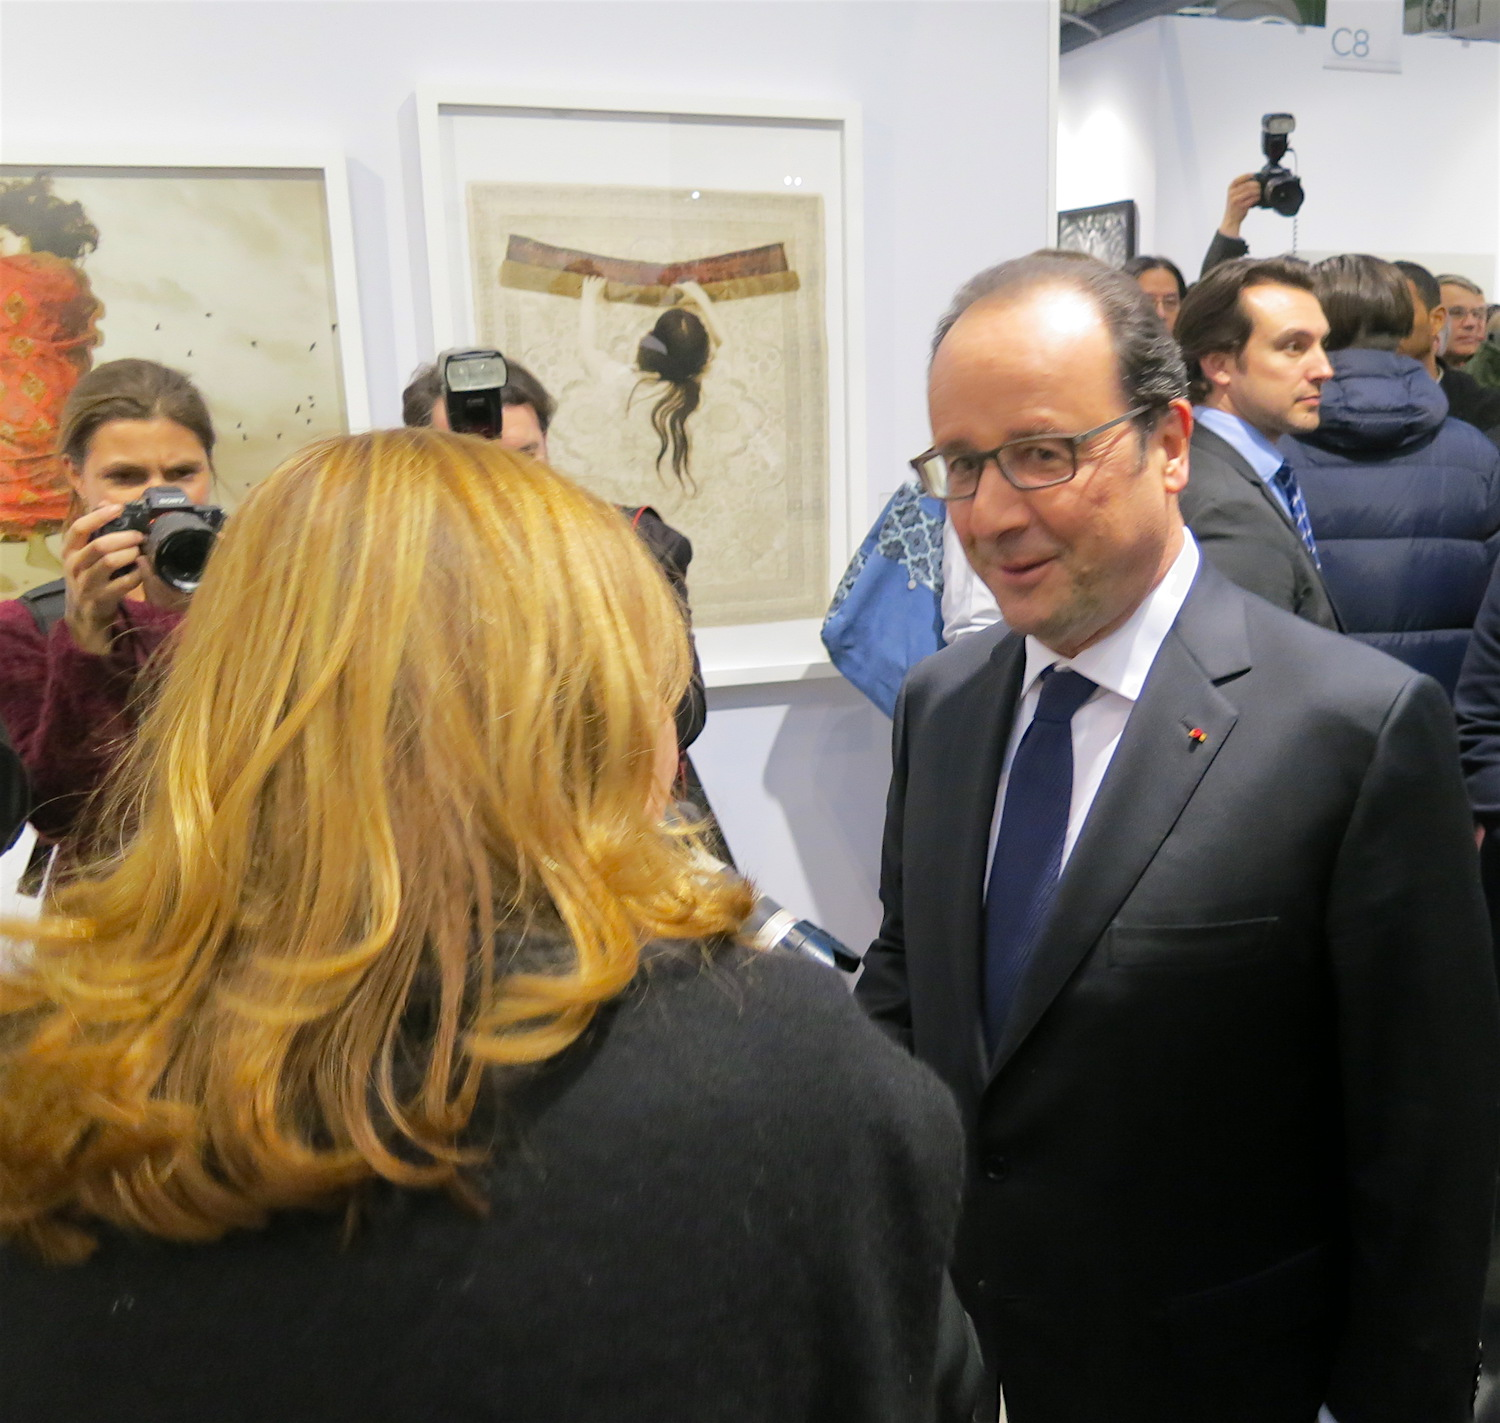 French President Hollande at the inauguration of Art Paris 2016 ©Sylvia Davis